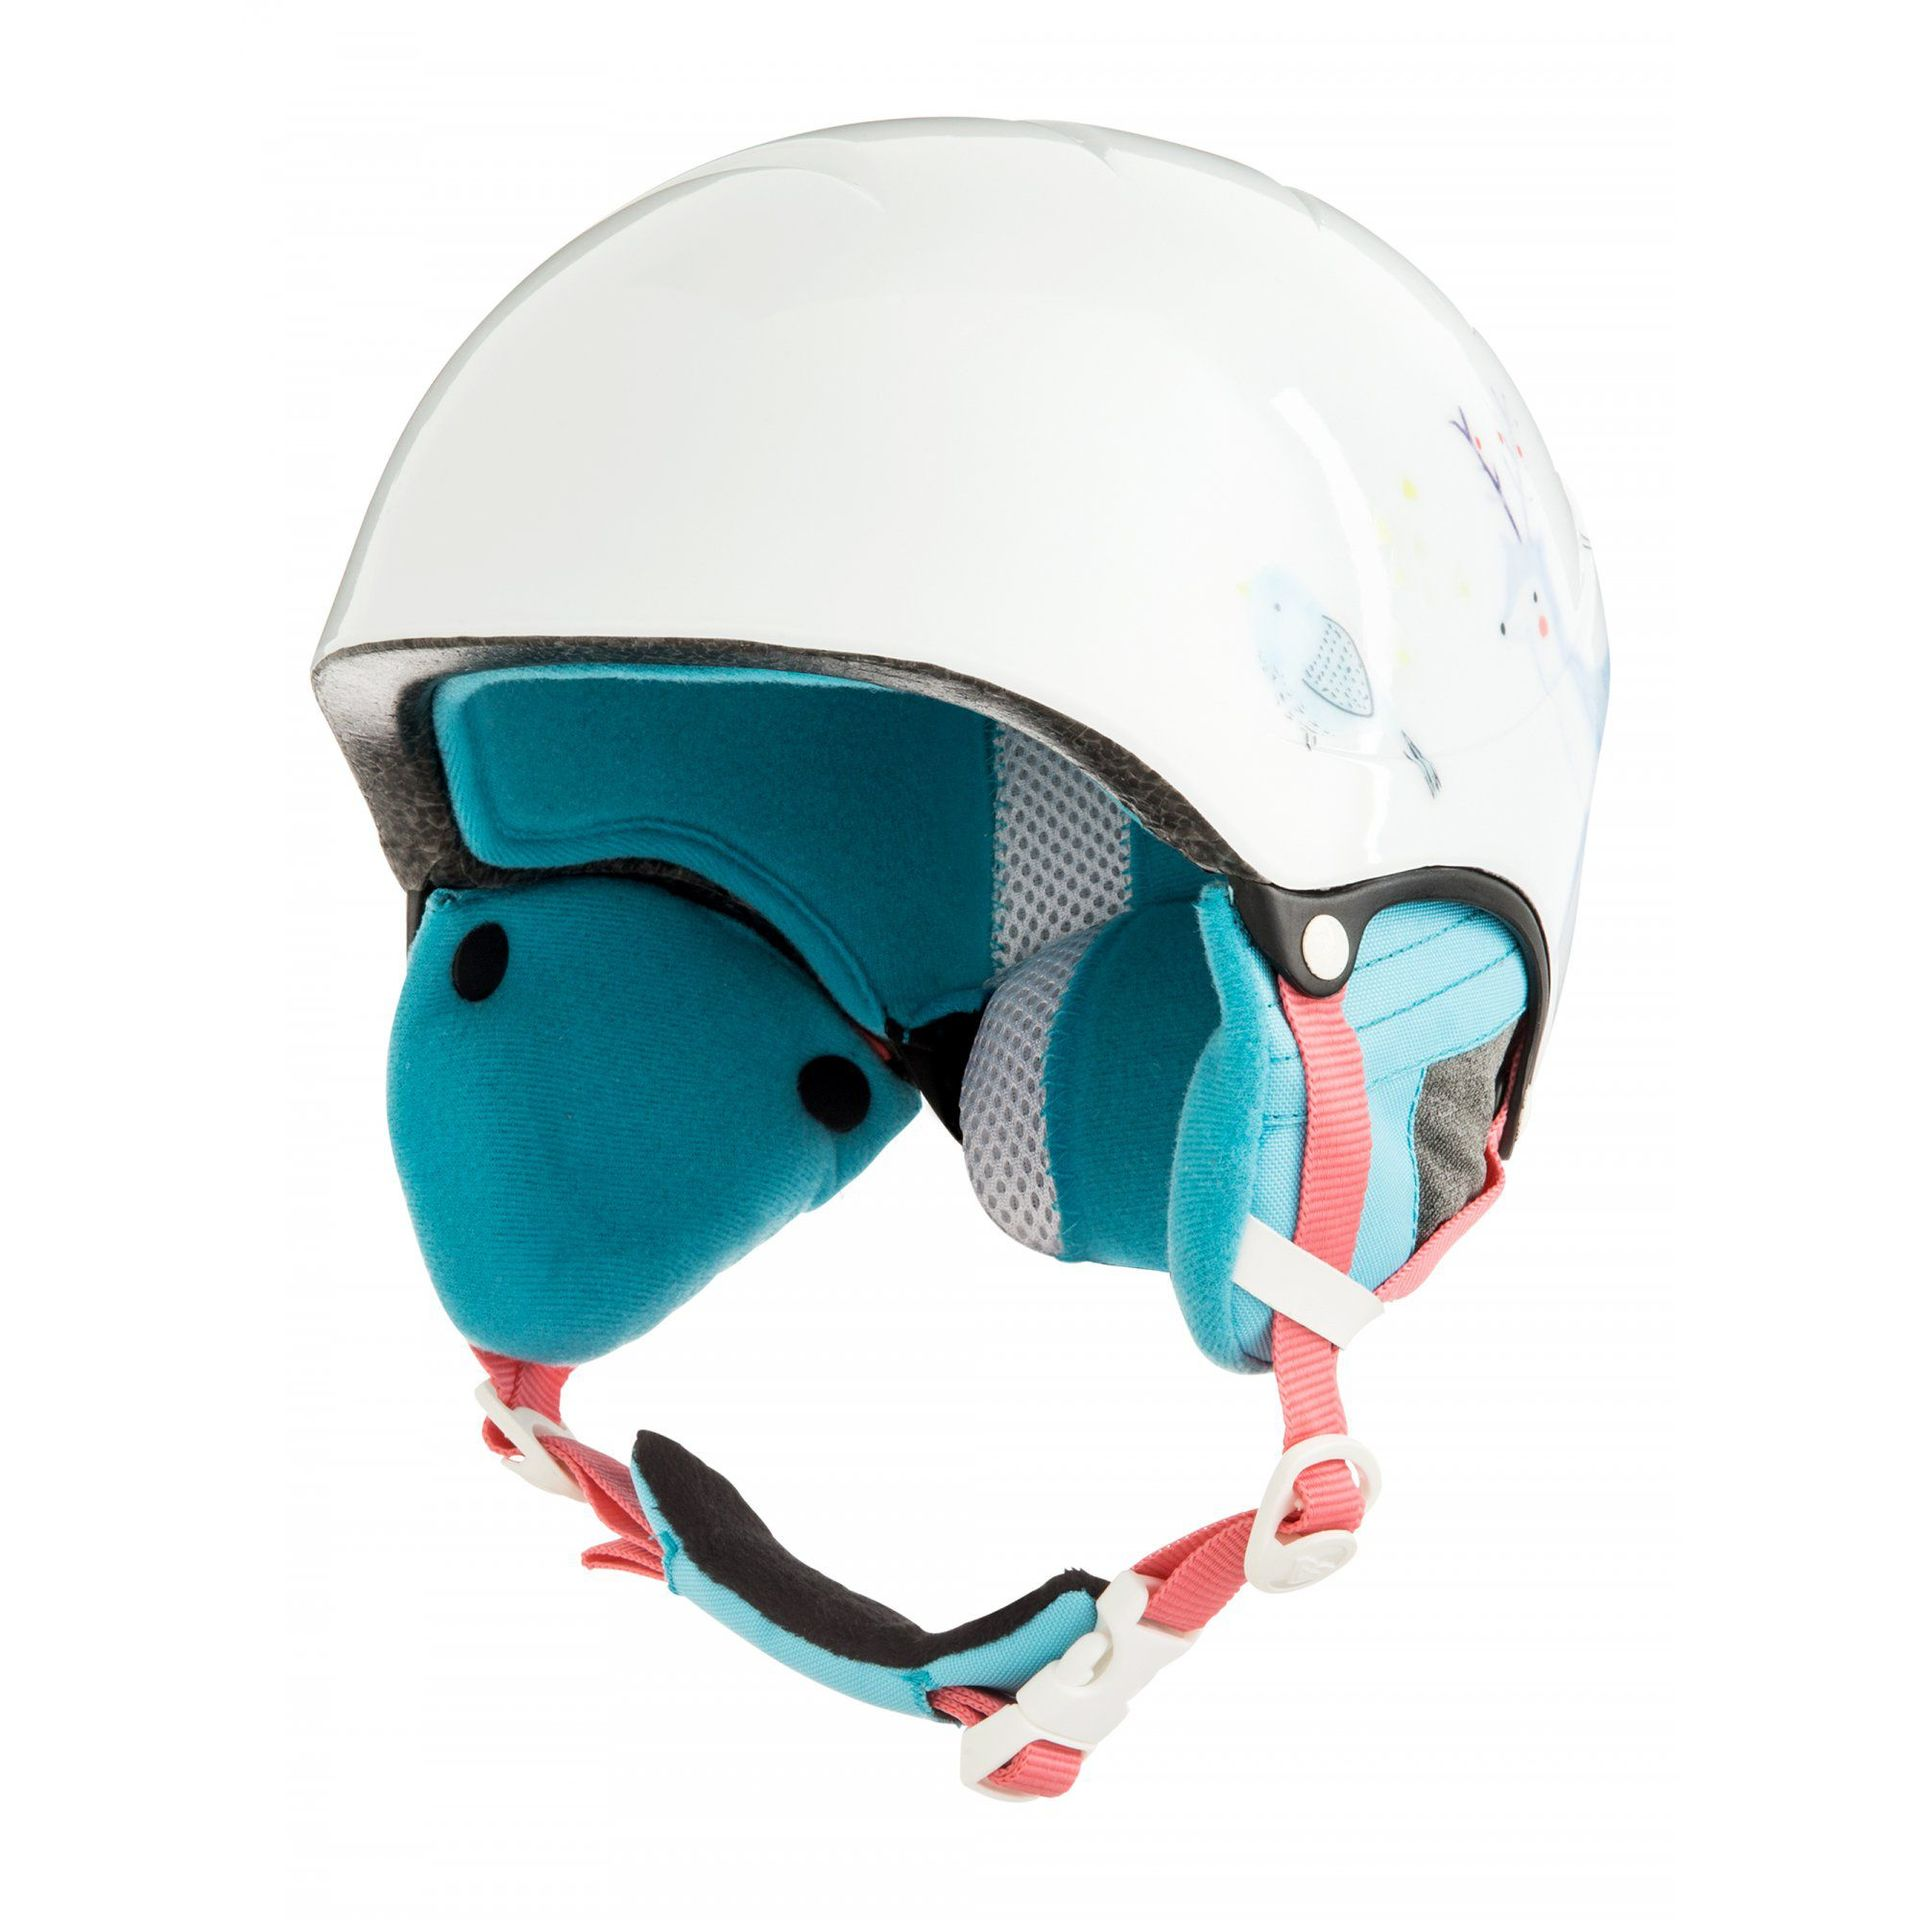 KASK ROXY MISTY GIRL ERGTL03012 WBB9